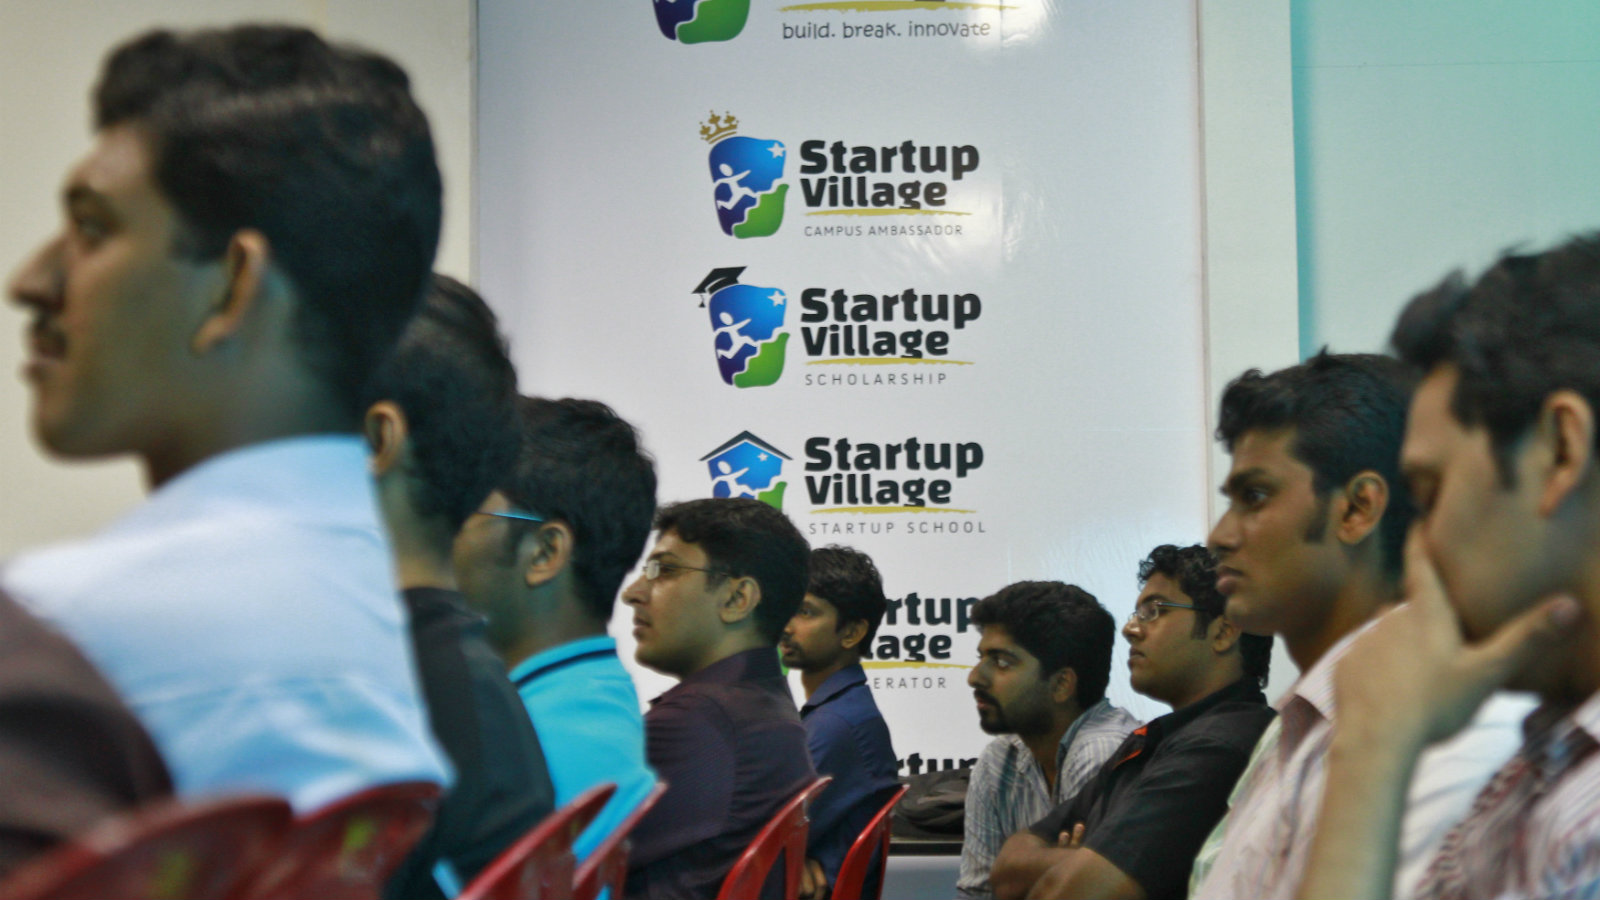 Entrepreneurs, employees and students listen to a speech during the Start-up saturday event at the Start-up Village in Kinfra High Tech Park in the southern Indian city of Kochi October 13, 2012. Three decades after Infosys, India's second-largest software service provider, was founded by middle-class engineers, the country has failed to create an enabling environment for first-generation entrepreneurs. Startup Village wants to break the logjam by helping engineers develop 1,000 Internet and mobile companies in the next 10 years. It provides its members with office space, guidance and a chance to hobnob with the stars of the tech industry. But critics say this may not even be the beginning of a game-changer unless India deals with a host of other impediments - from red tape to a lack of innovation and a dearth of investors - that are blocking entrepreneurship in Asia's third-largest economy. To match Feature INDIA-TECHVILLAGE/ Picture taken October 13, 2012.